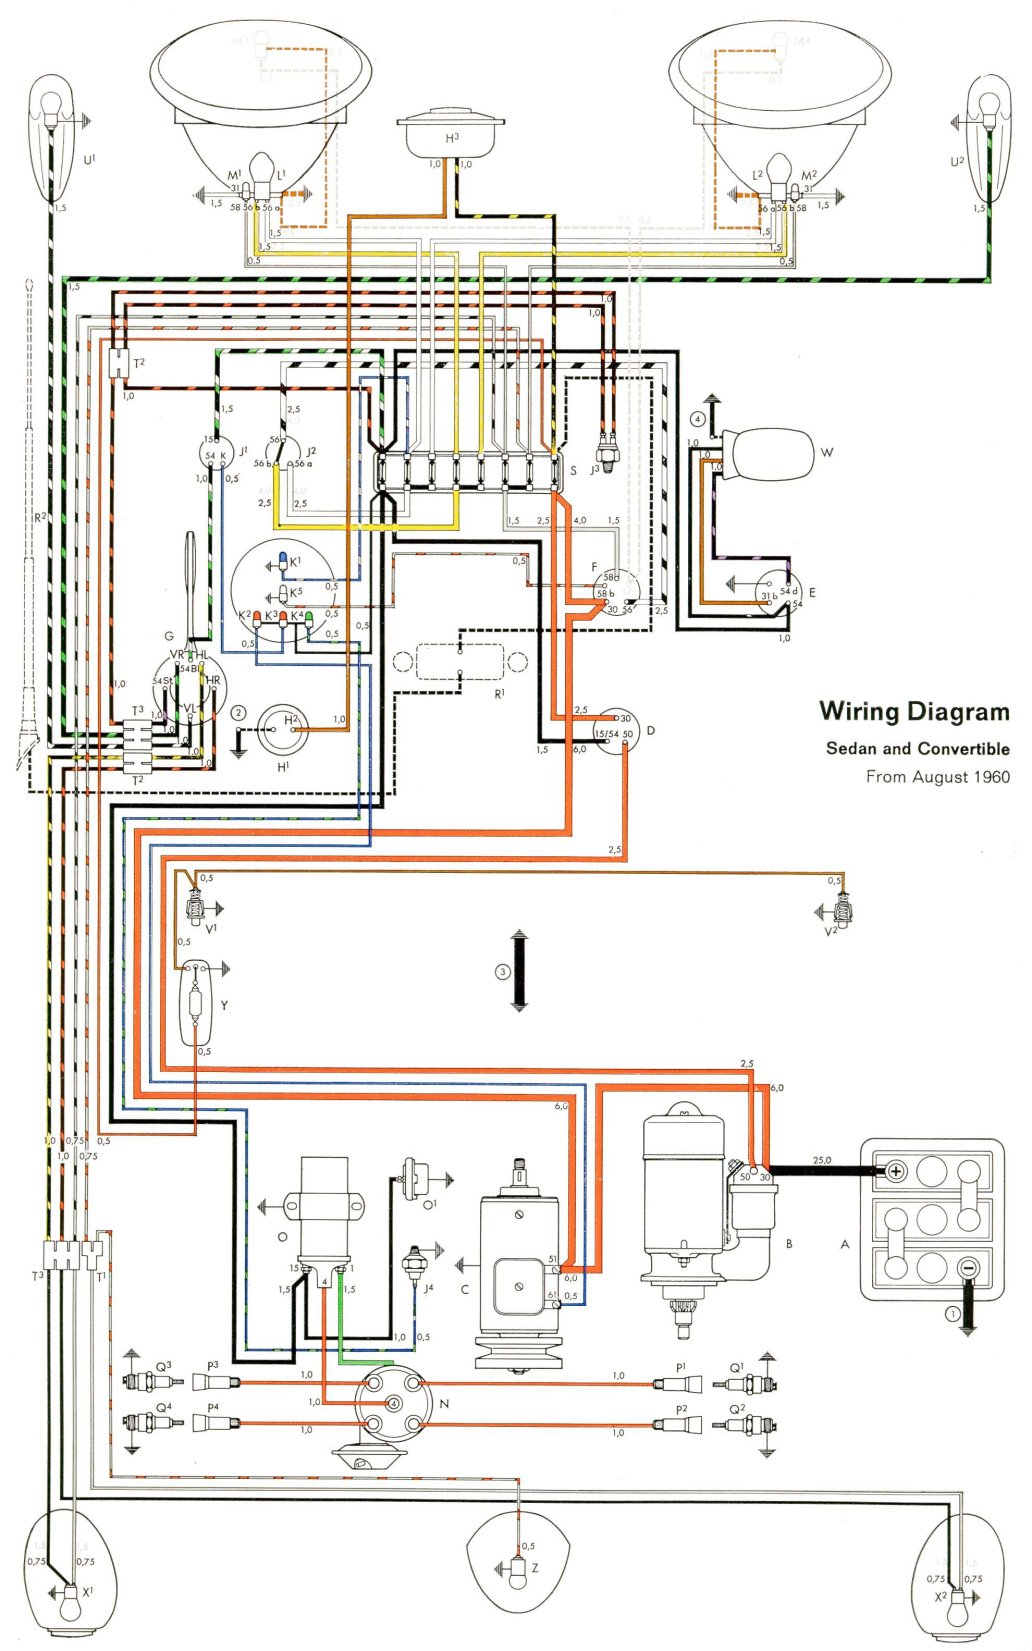 bug_61 1961 beetle wiring diagram thegoldenbug com vw bug wiring diagram at bayanpartner.co